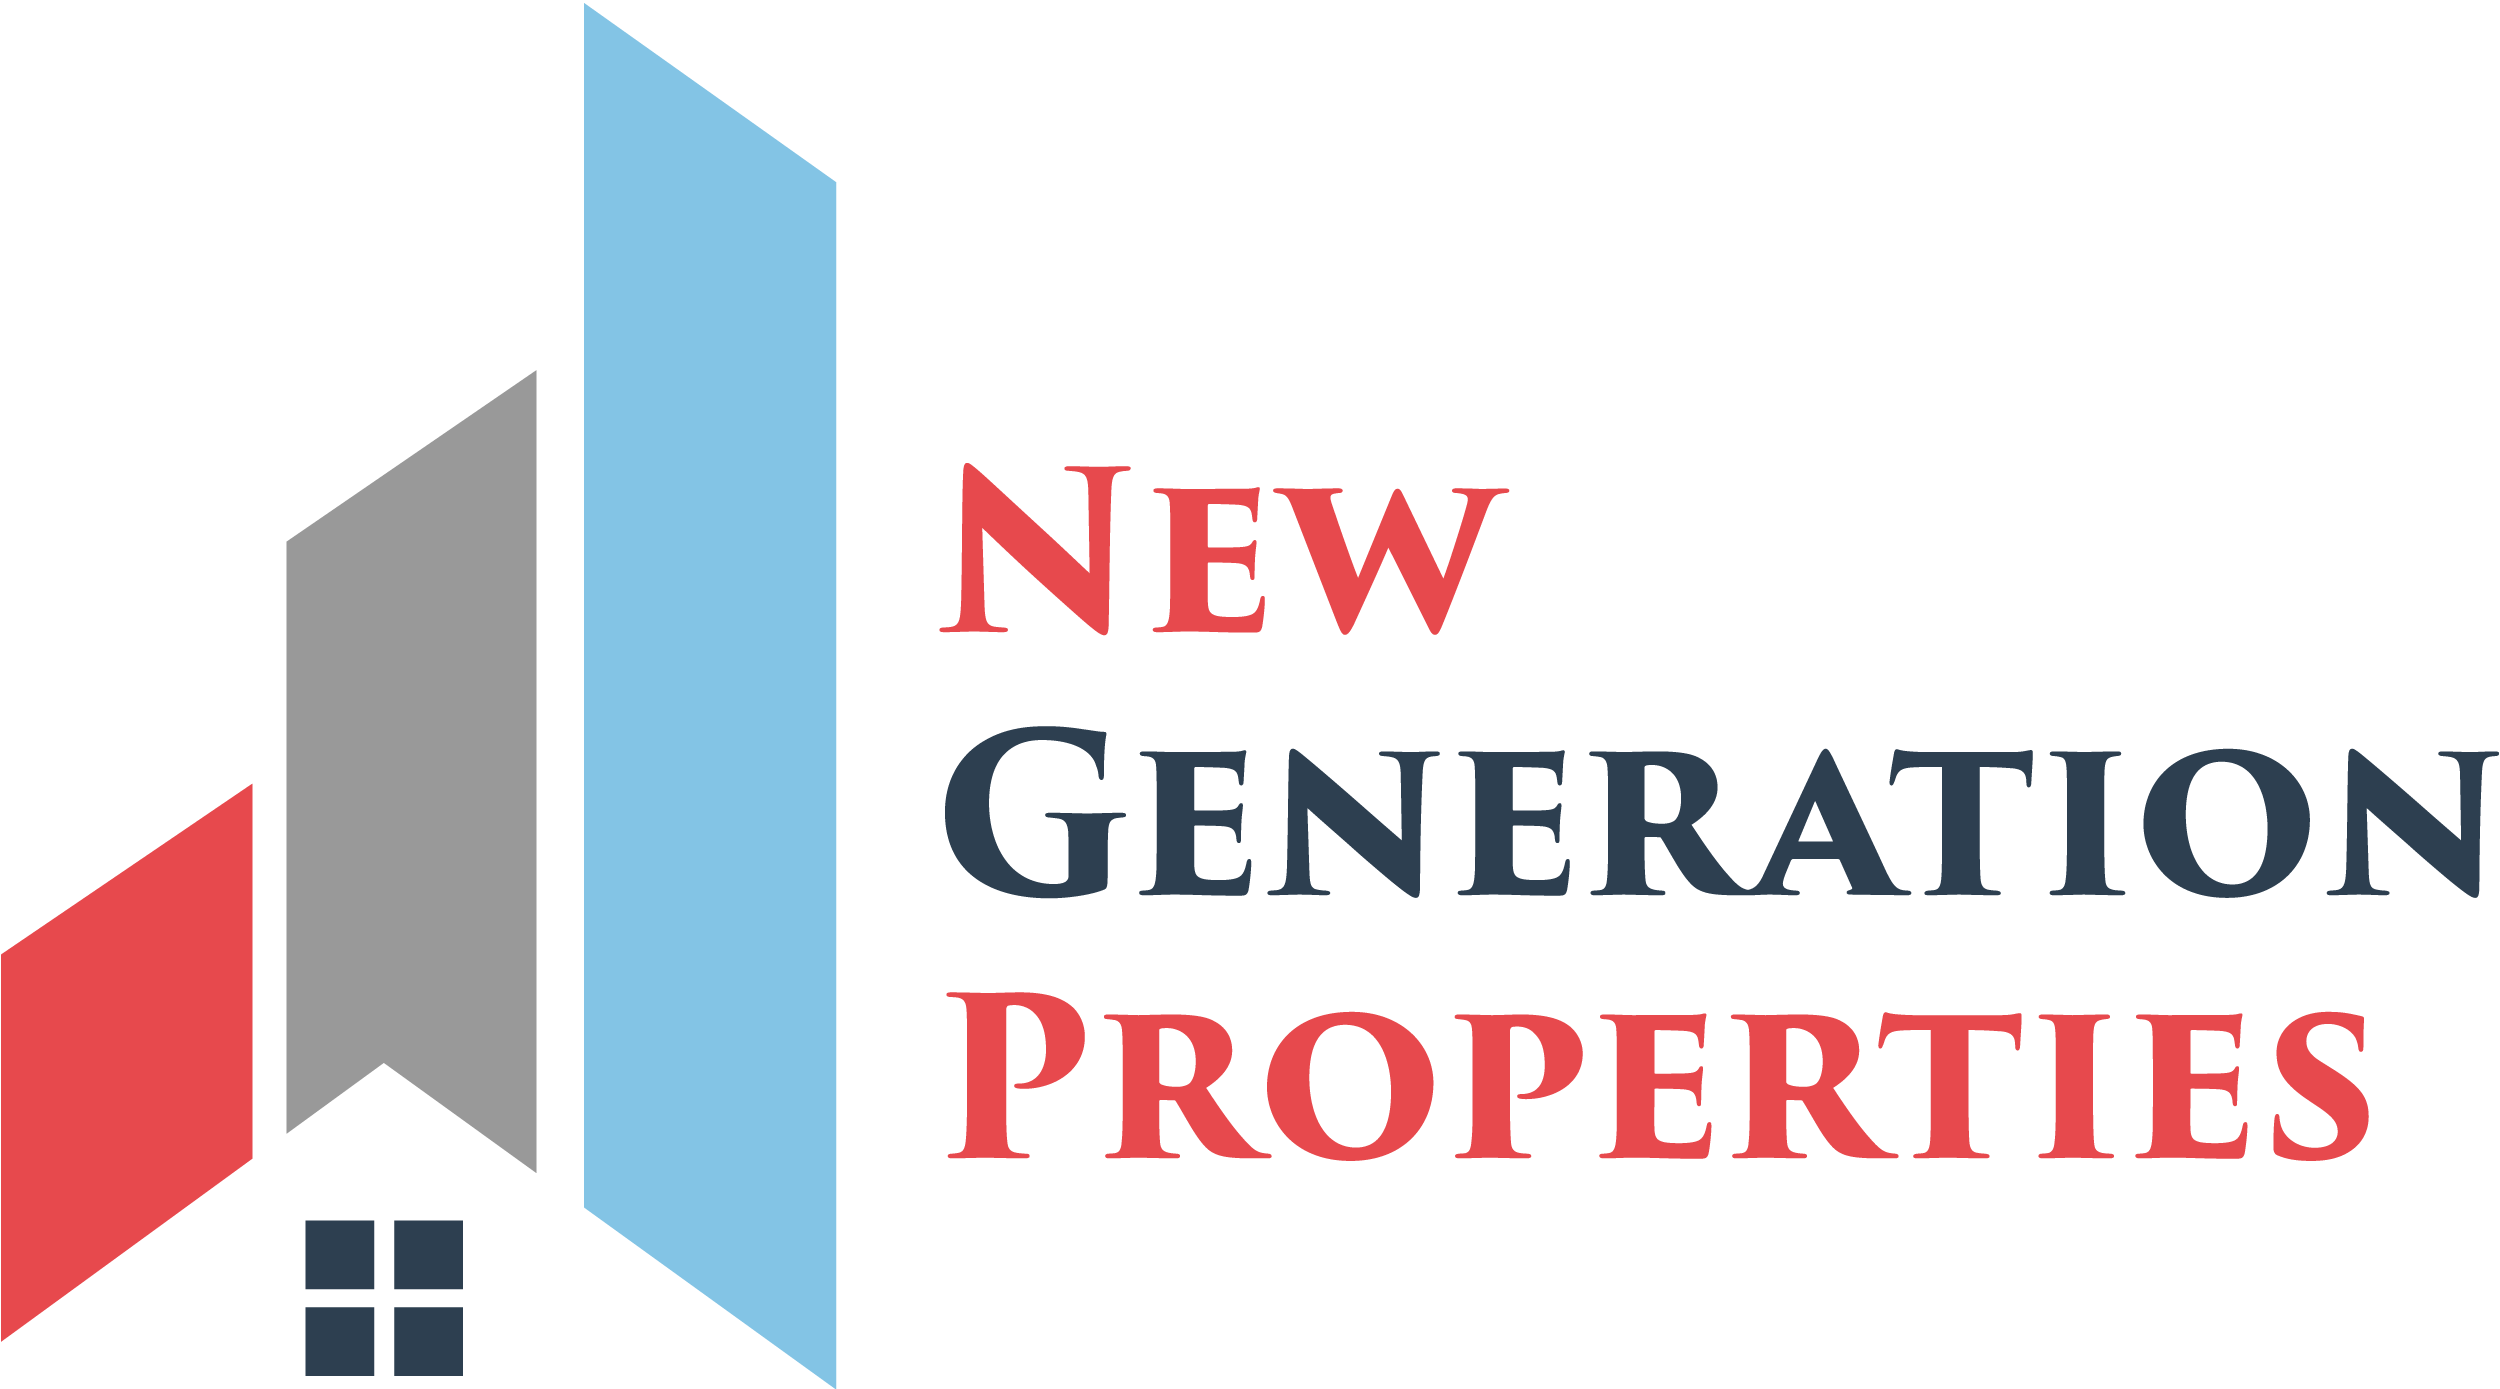 New Generation Properties LLC